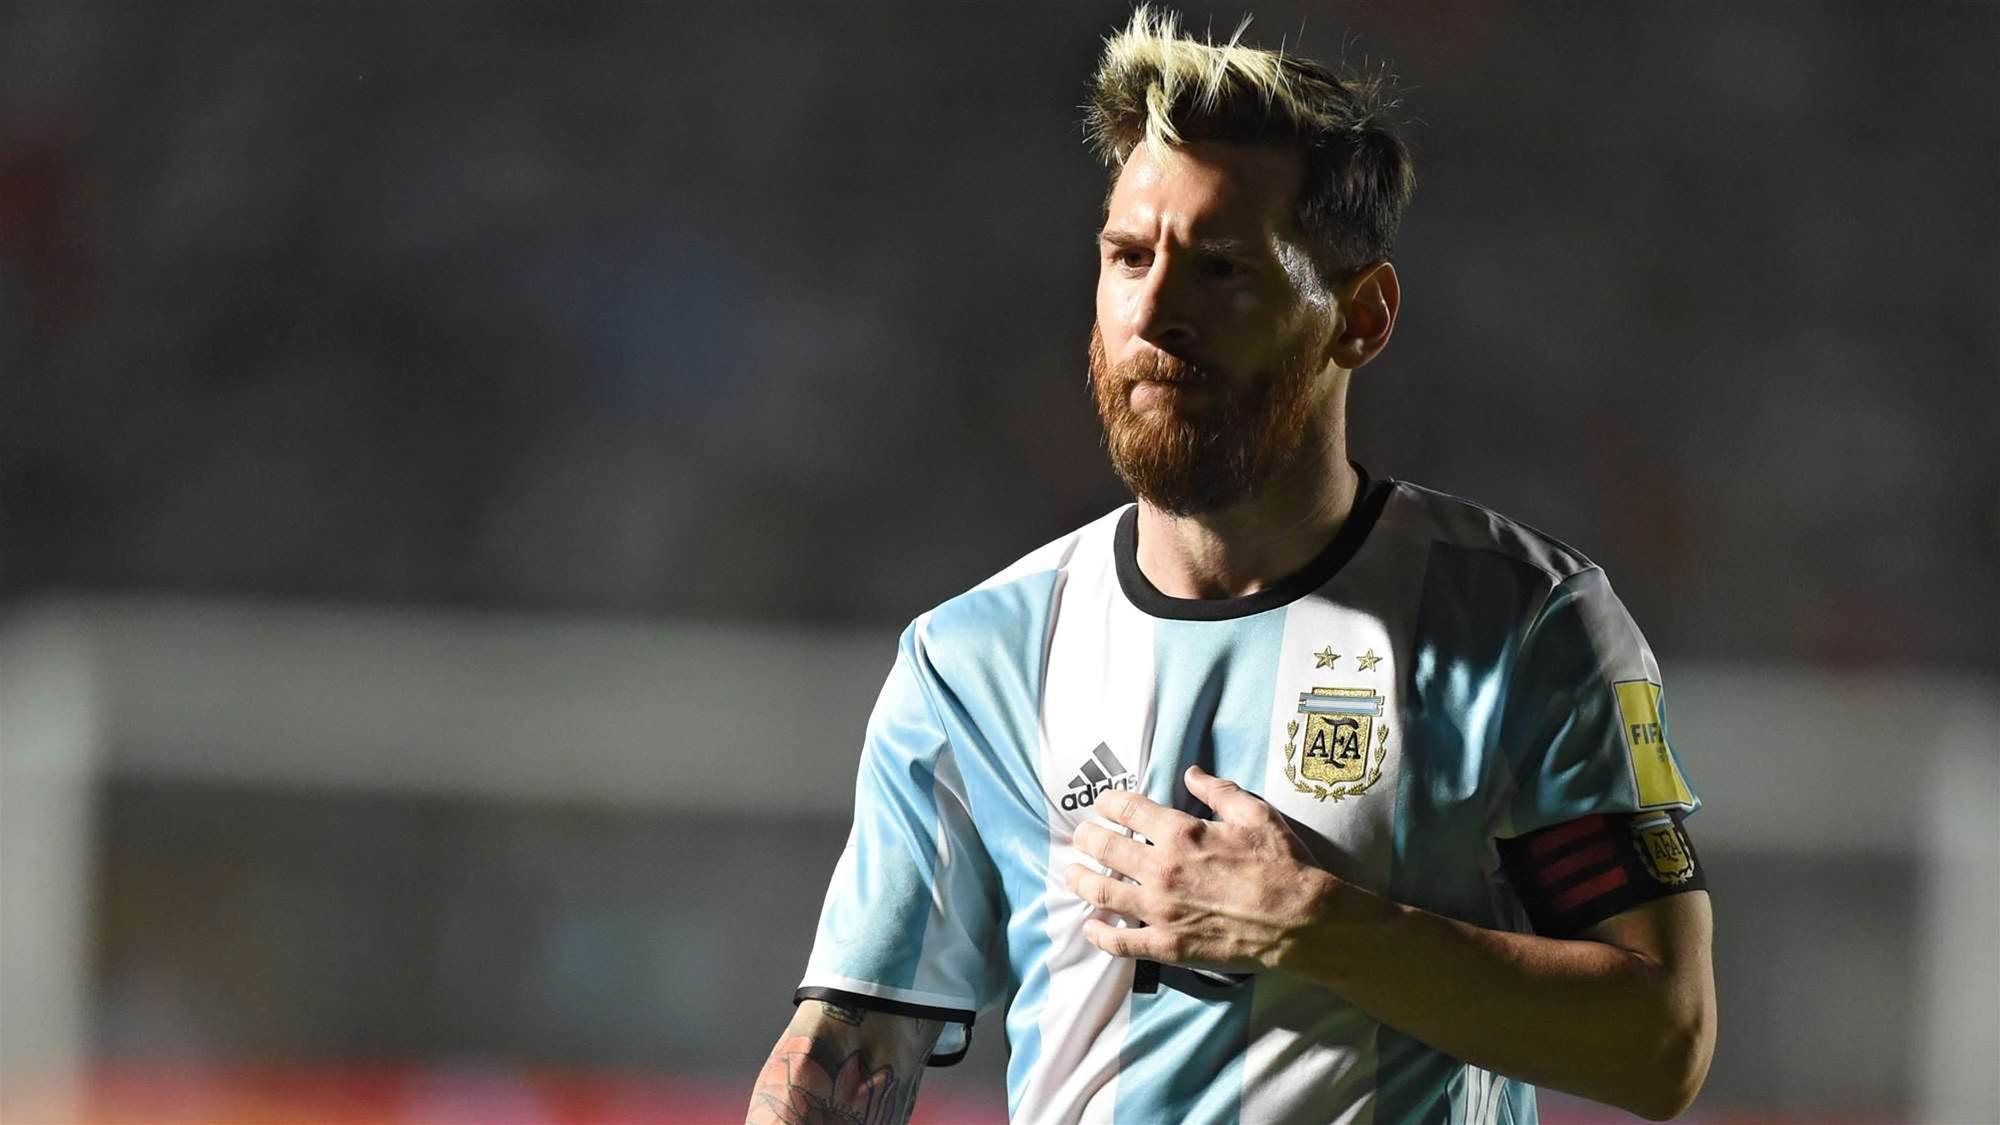 Could Simeone be the key to unlock Messi?